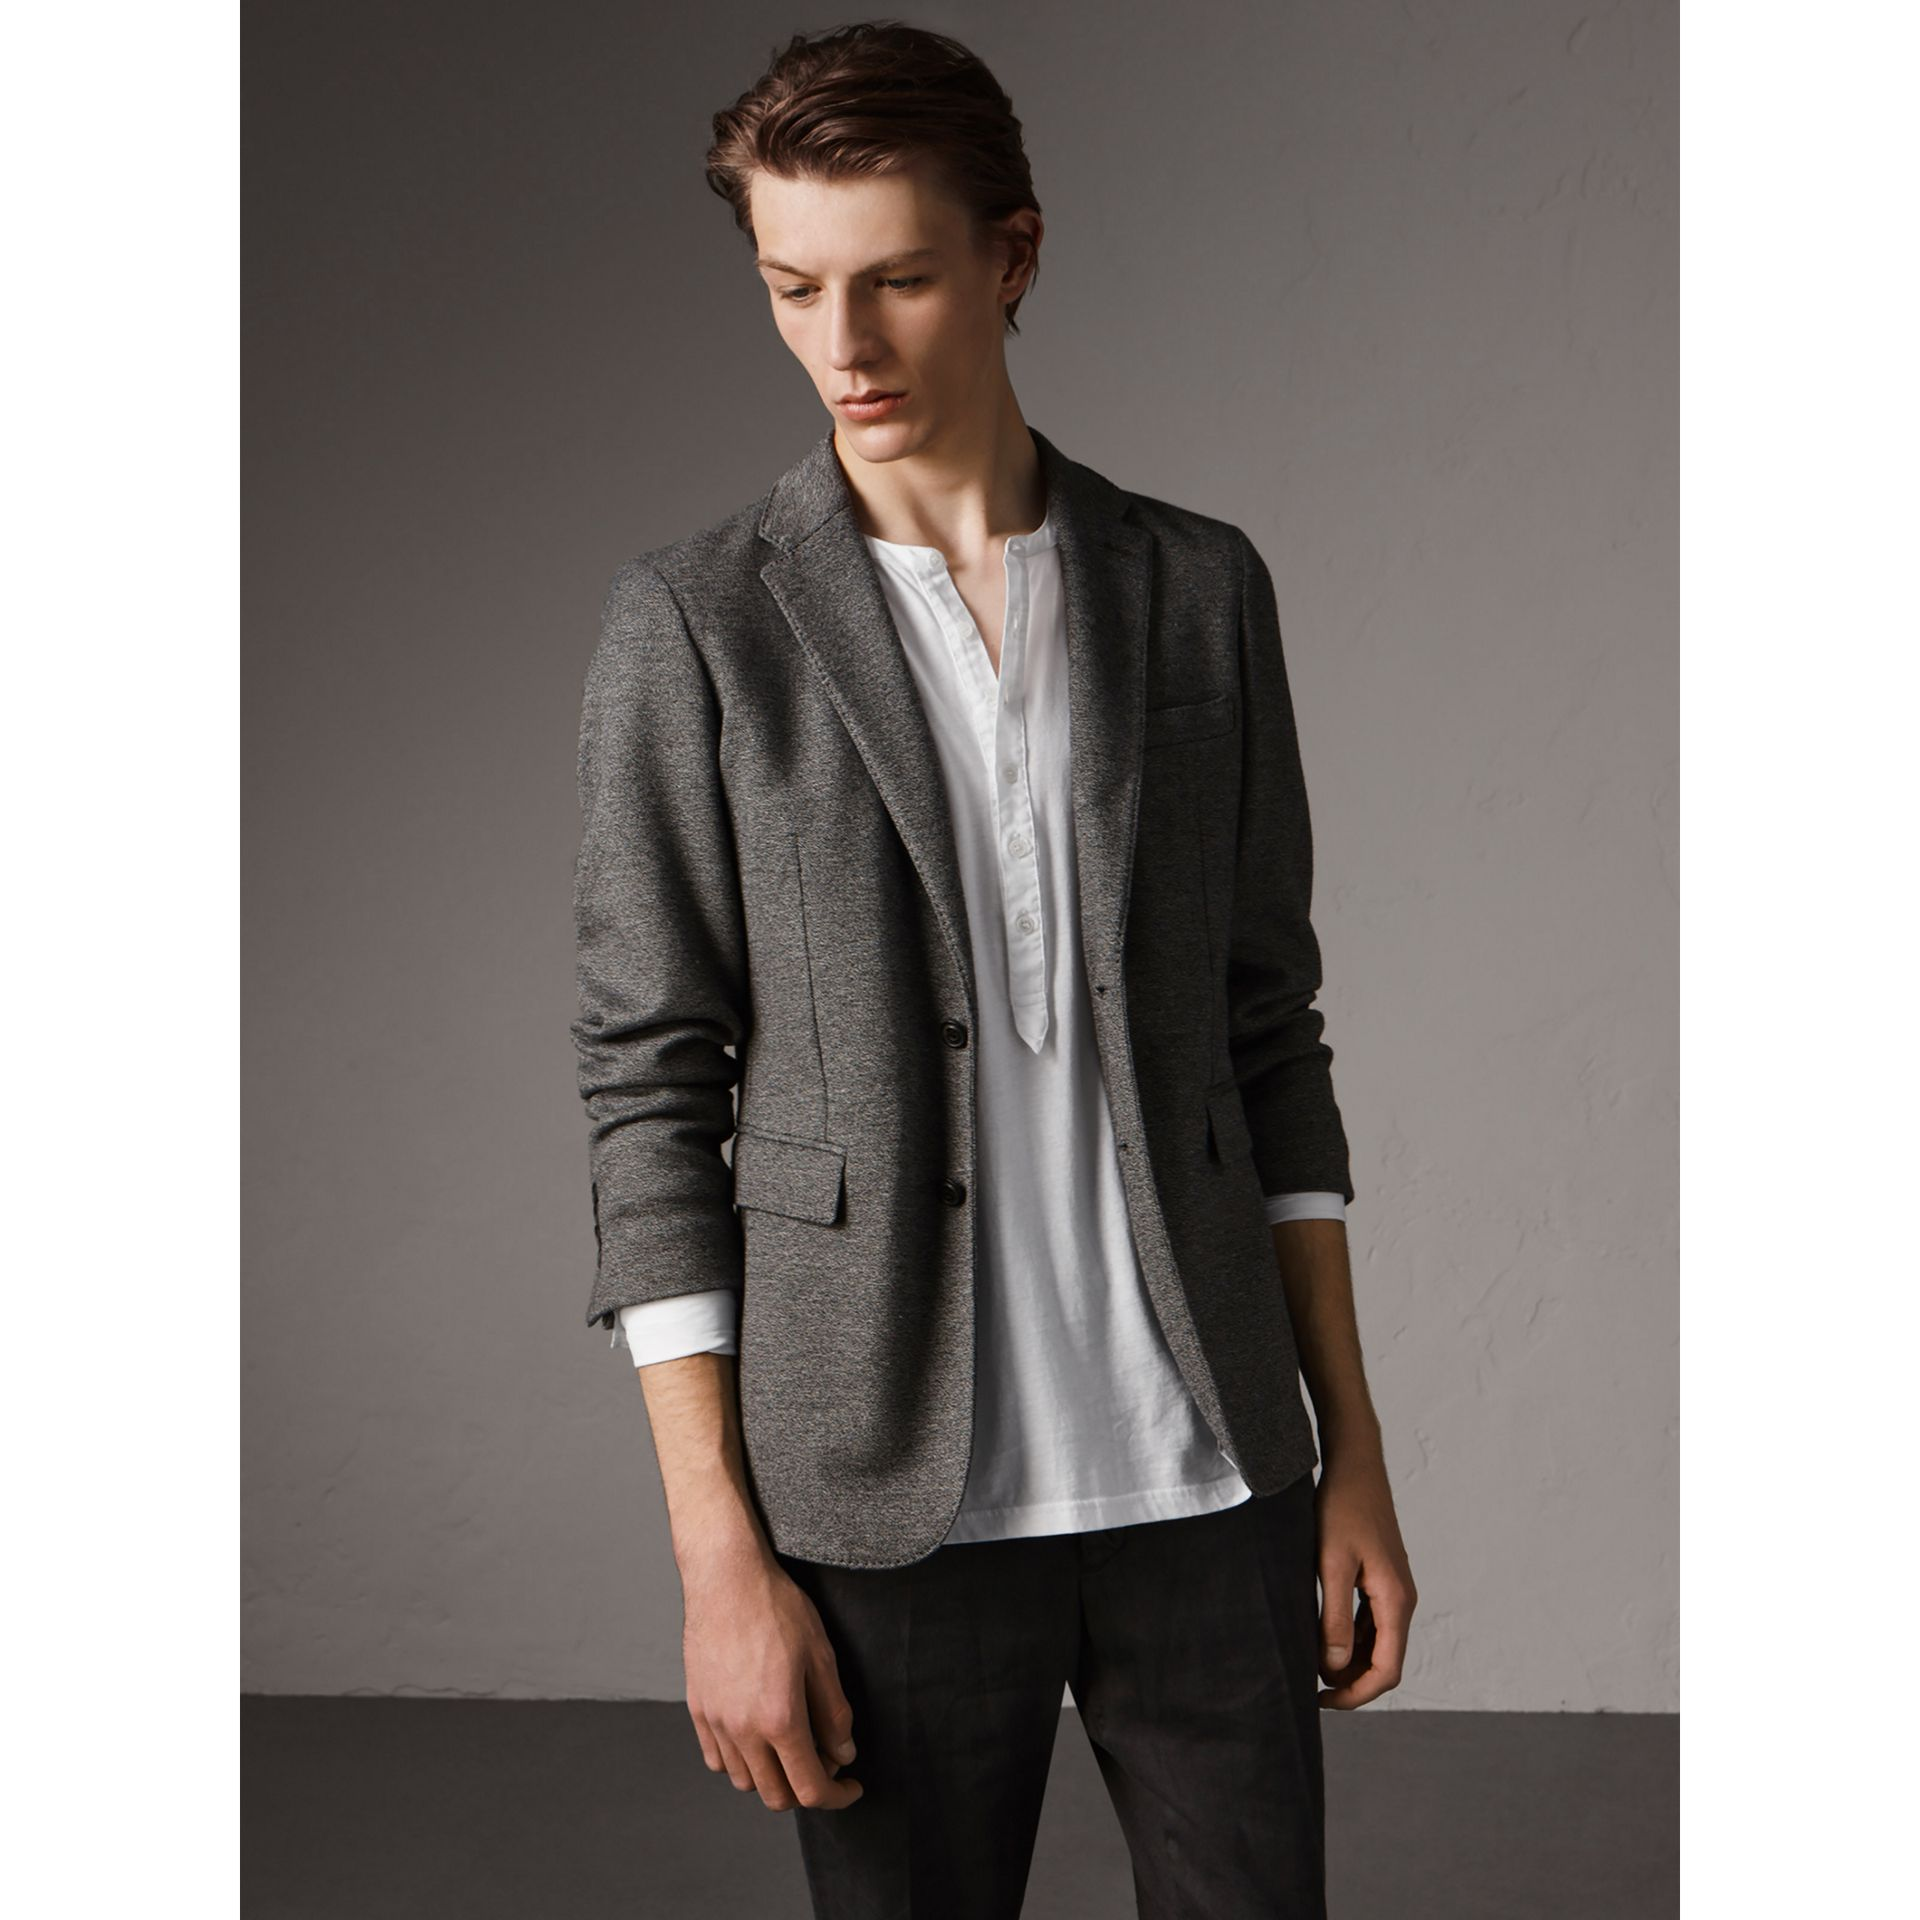 Soho Fit Cotton Wool Jersey Tailored Jacket in Charcoal Melange - Men | Burberry - gallery image 6